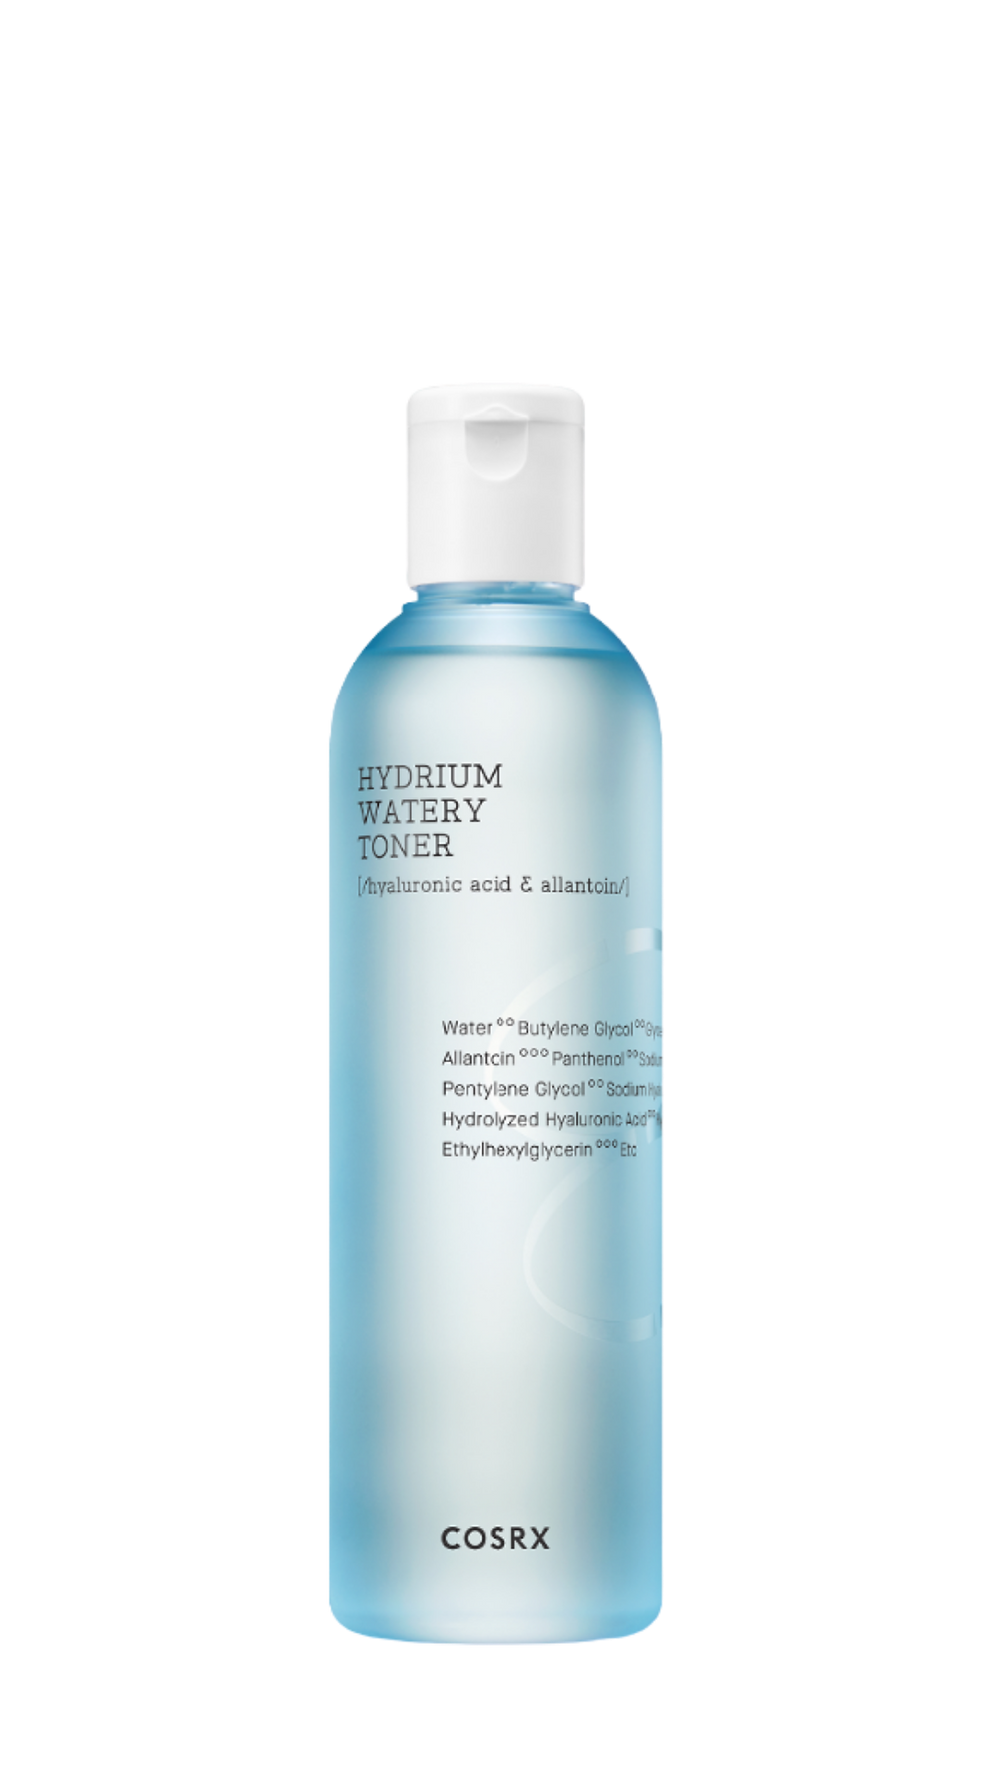 COSRX Hydrium Watery Toner. Suitable for Dry, Normal Skin. $28